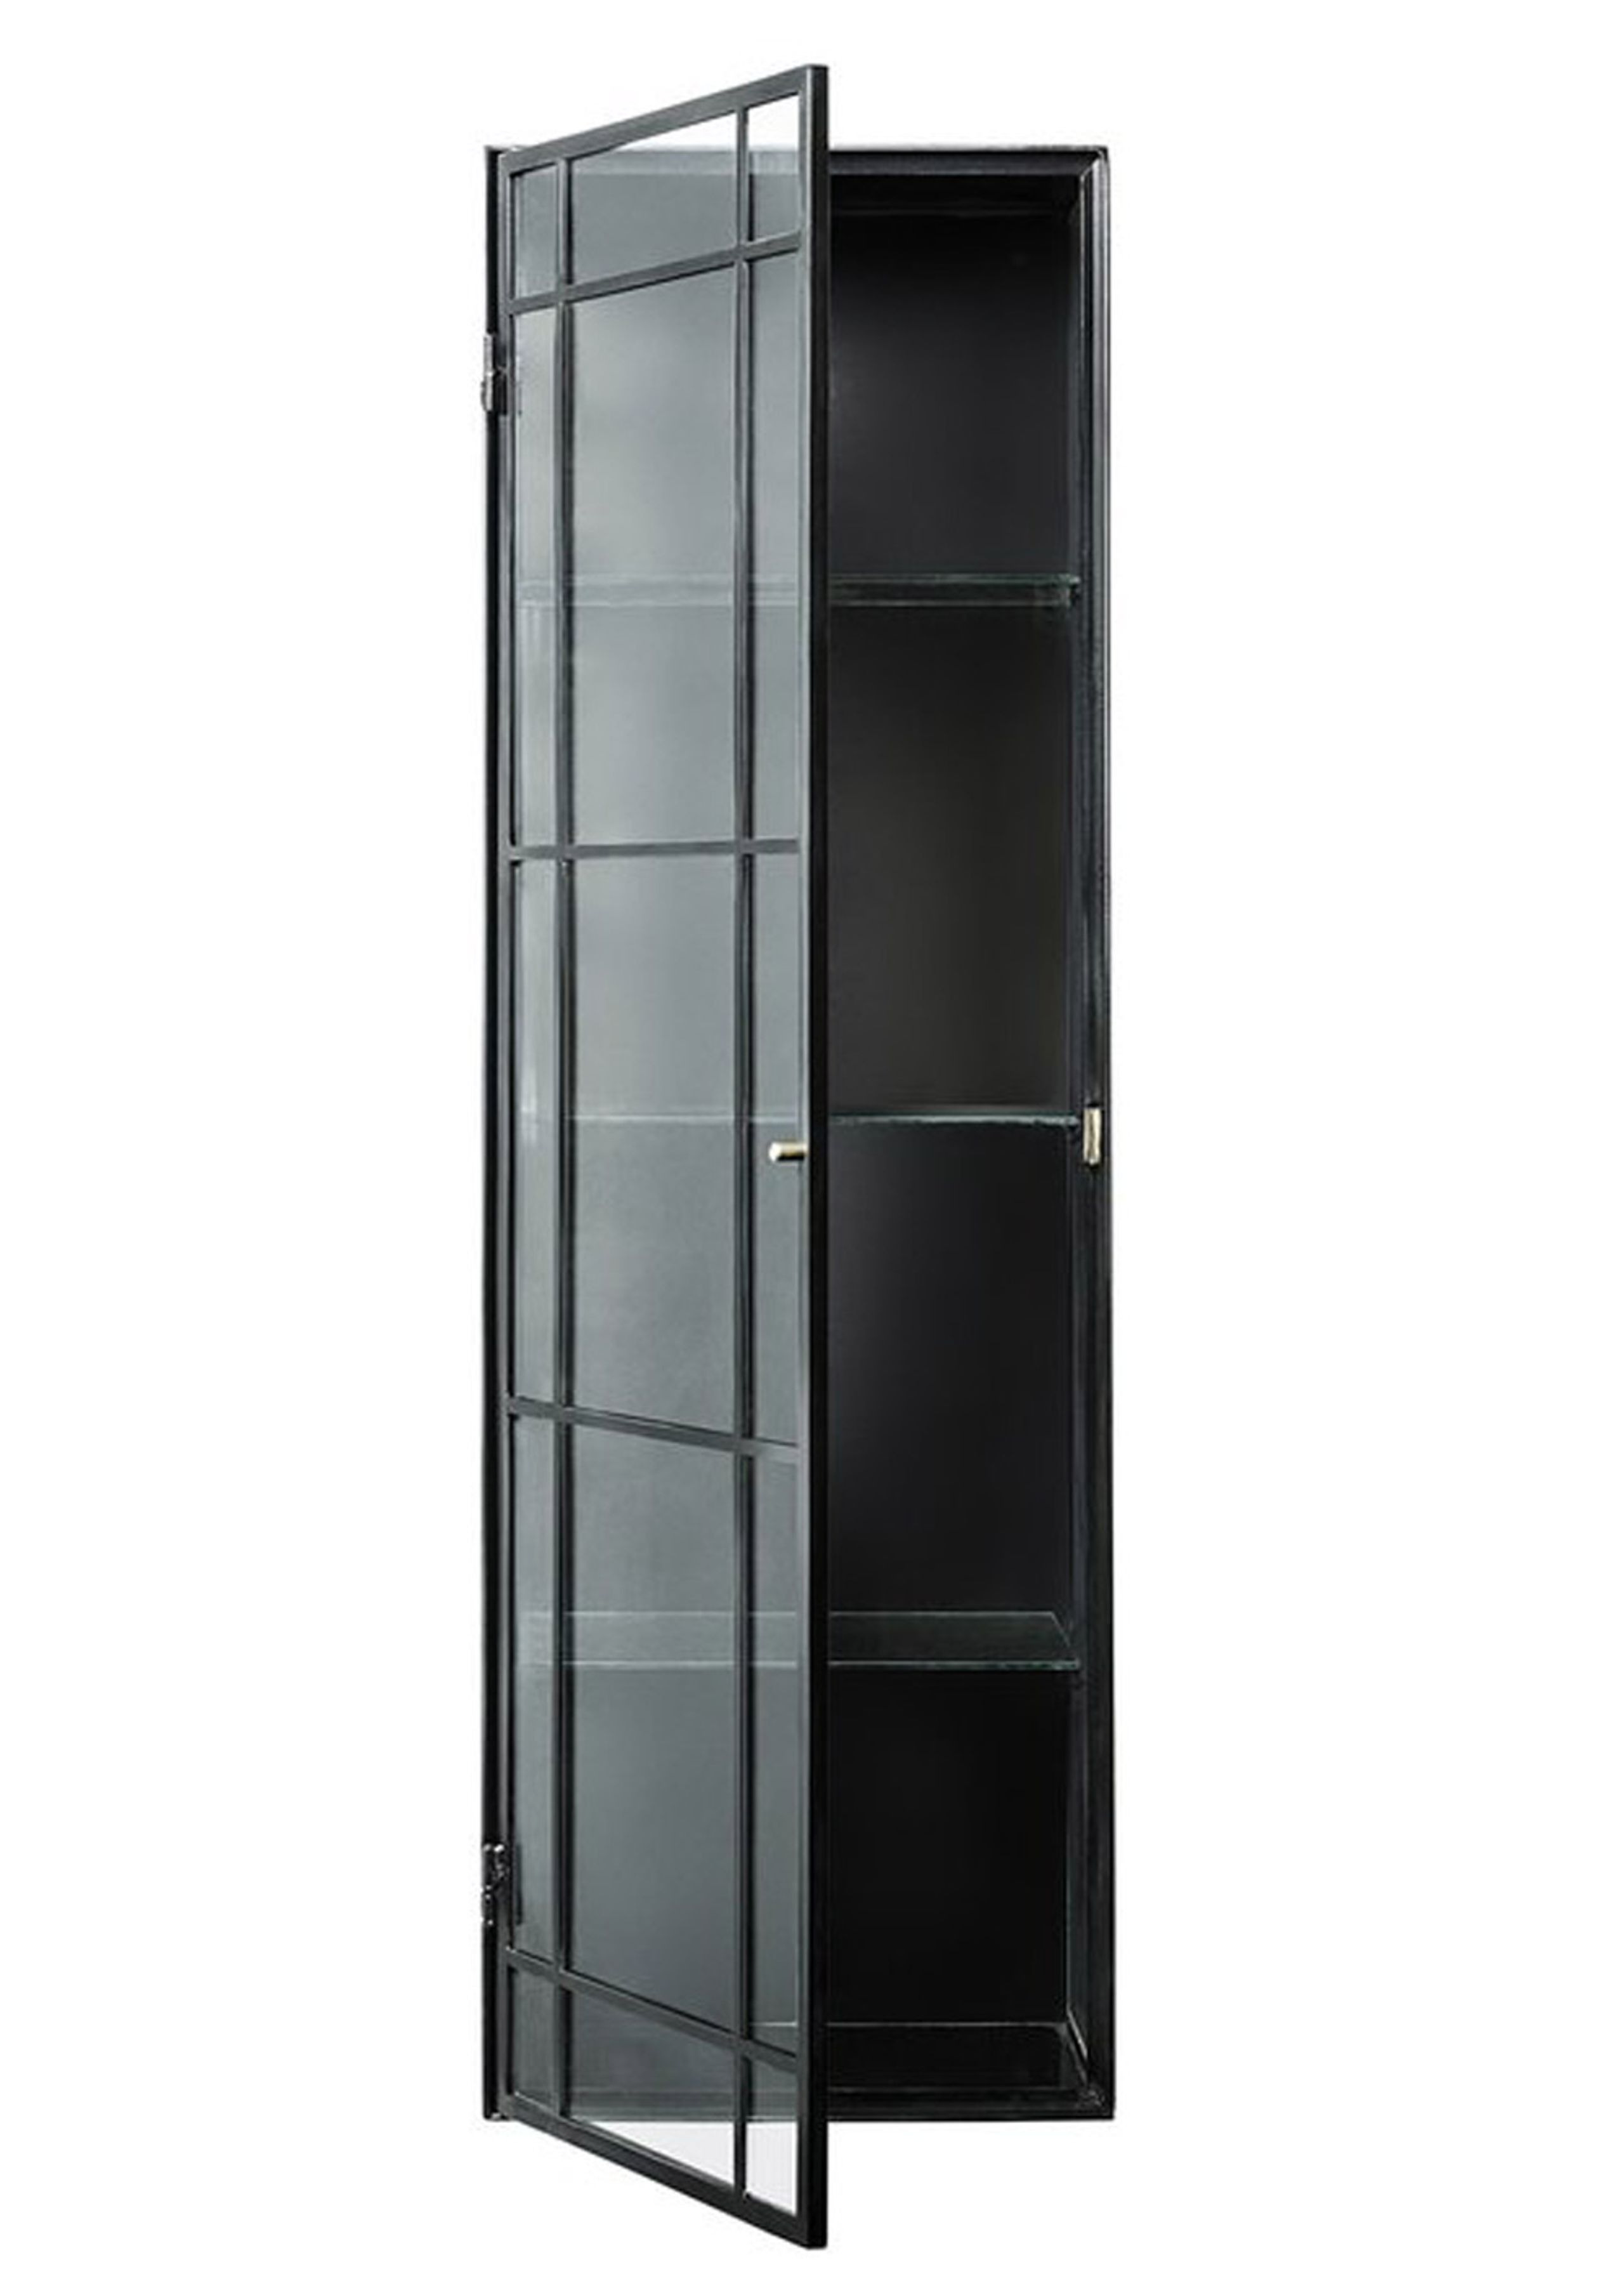 louise roe skab louise roe frame cabinet one door black iron w glass